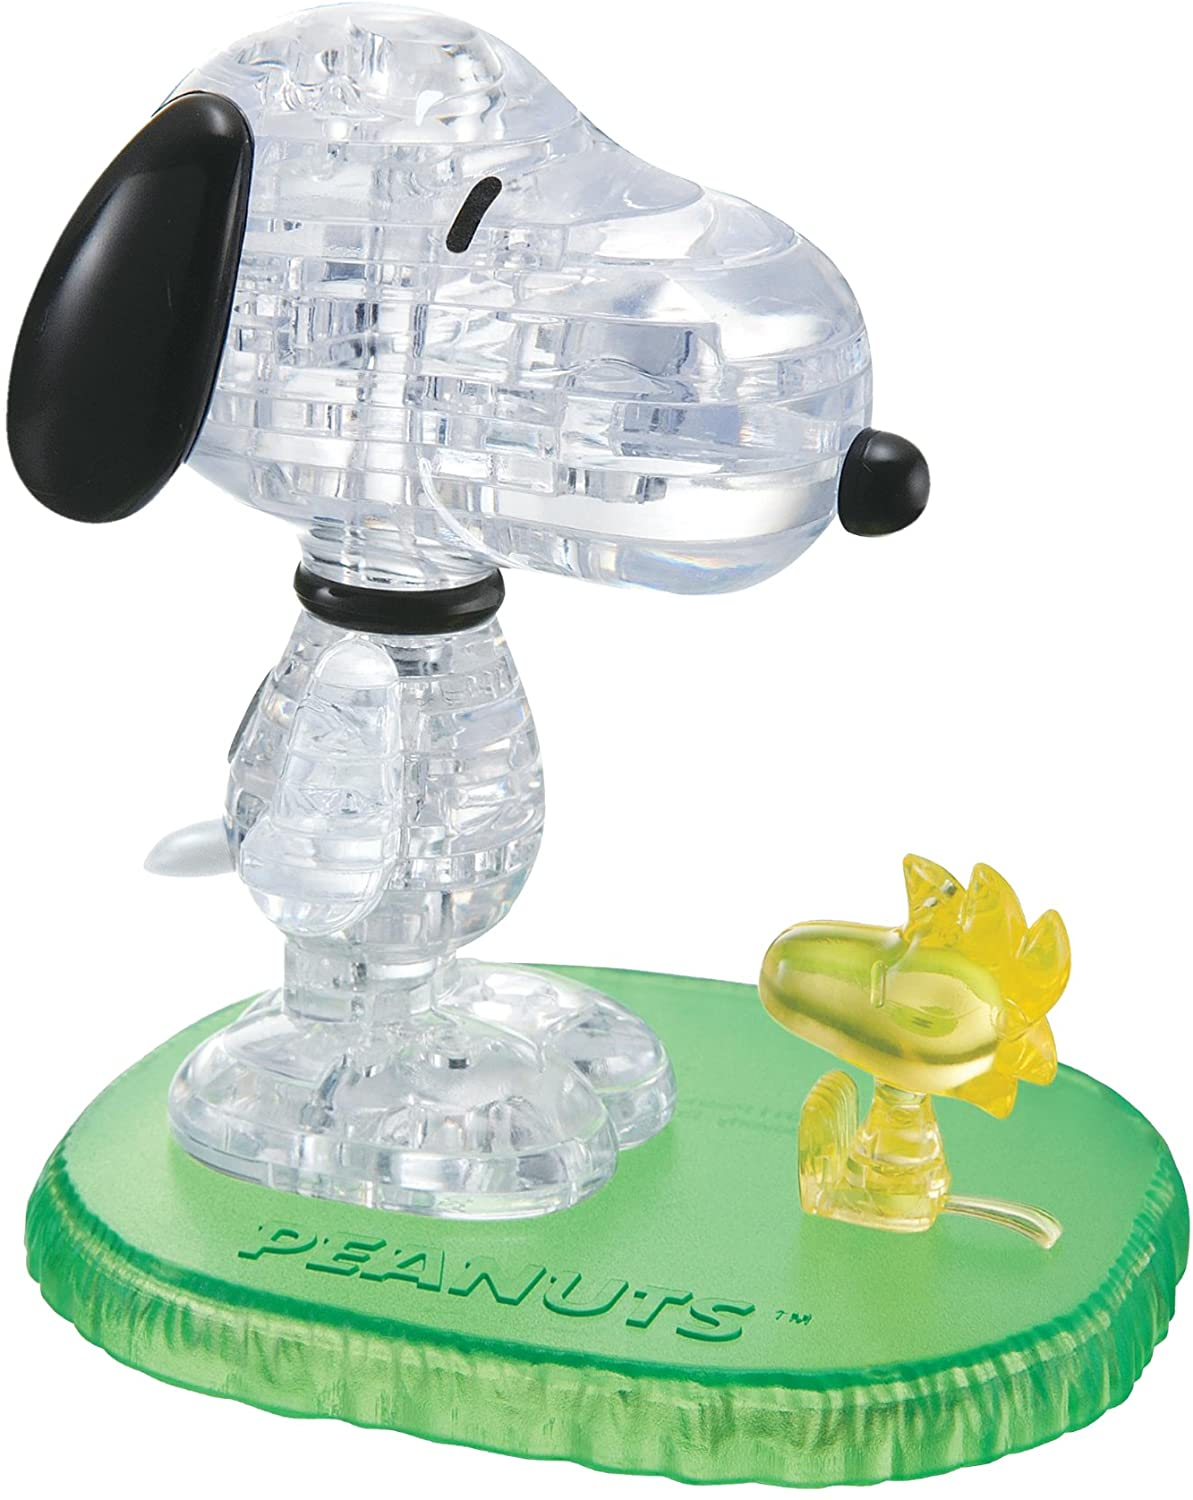 B00AK0M6DO BePuzzled Original 3D Crystal Jigsaw Puzzle - Snoopy & Woodstock Assembly Brain Teaser, Fun Yet Challenging Peanuts Model Toy Gift Decoration for Adults & Kids Age 12 & Up, 41Piece (Level 1) 818Vt7LJqGL